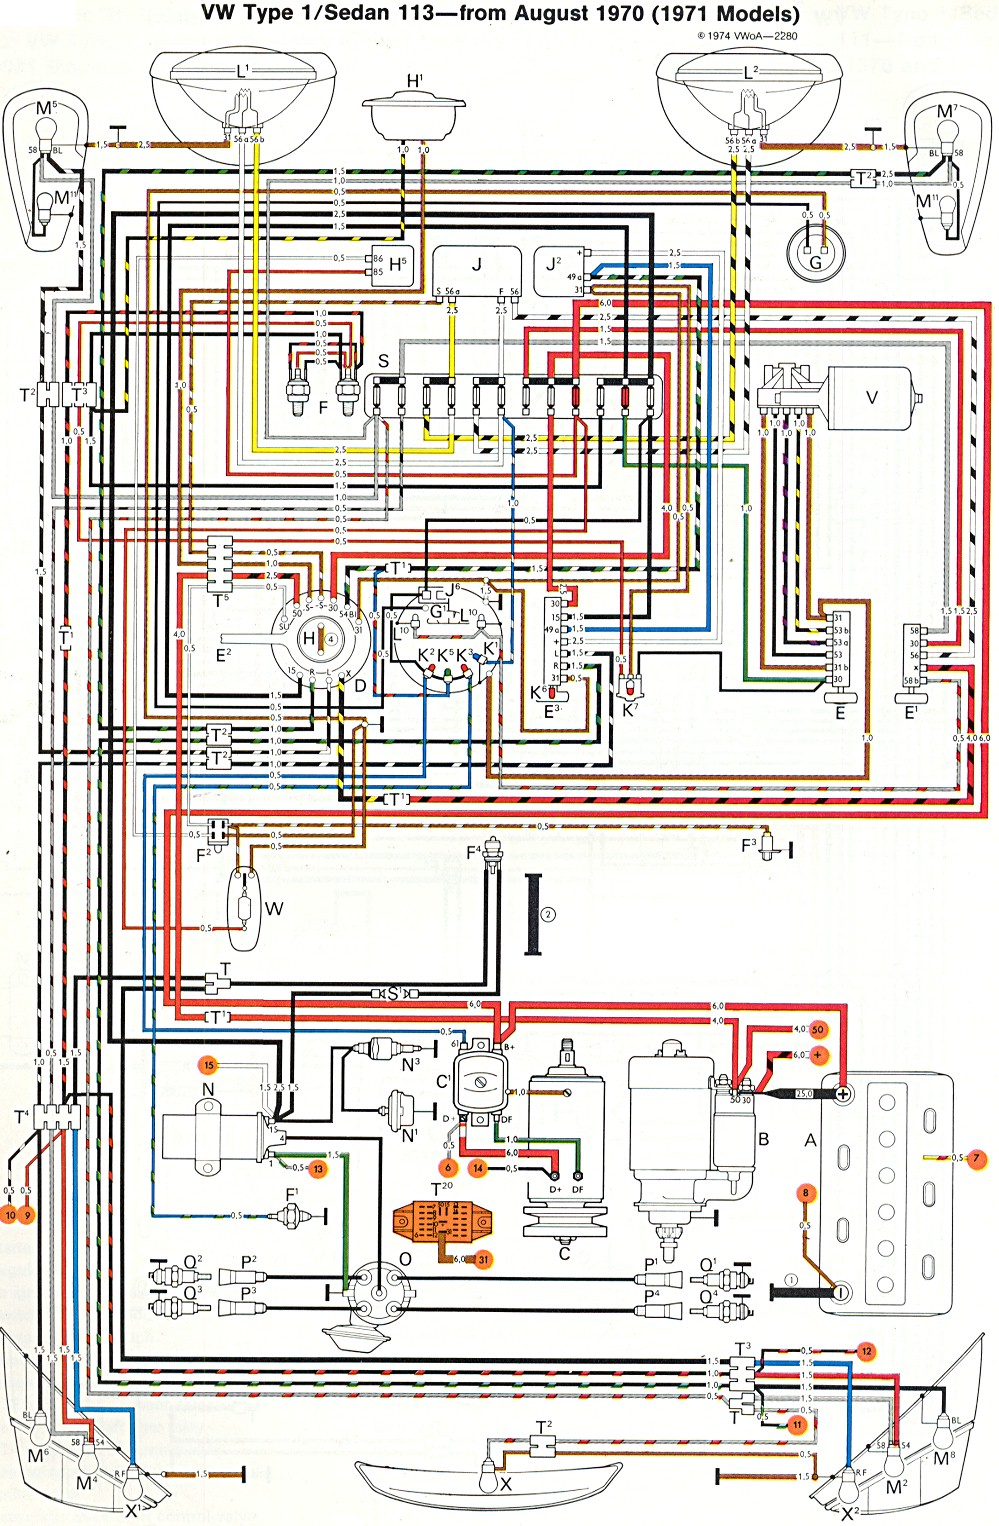 bug_super_71 2002 vw beetle wiring diagram altenator wiring diagram 2002 vw 68 VW Wiring Diagram at mifinder.co